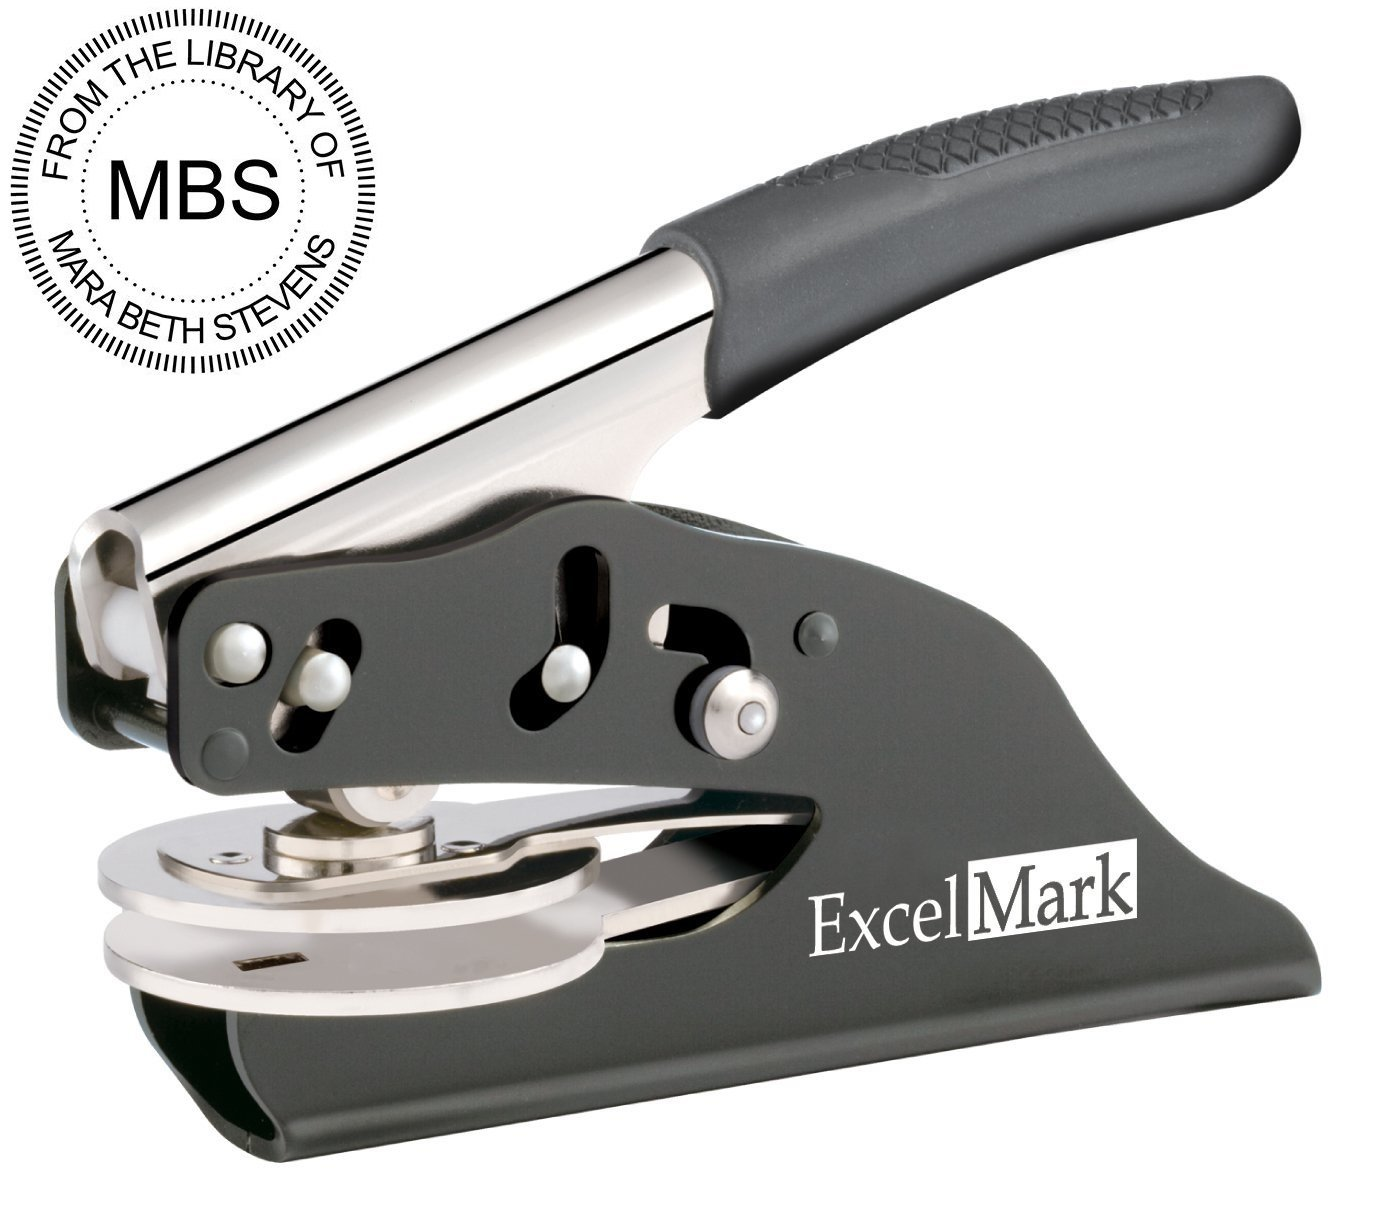 ExcelMark from The Library of Personal Hand Embosser